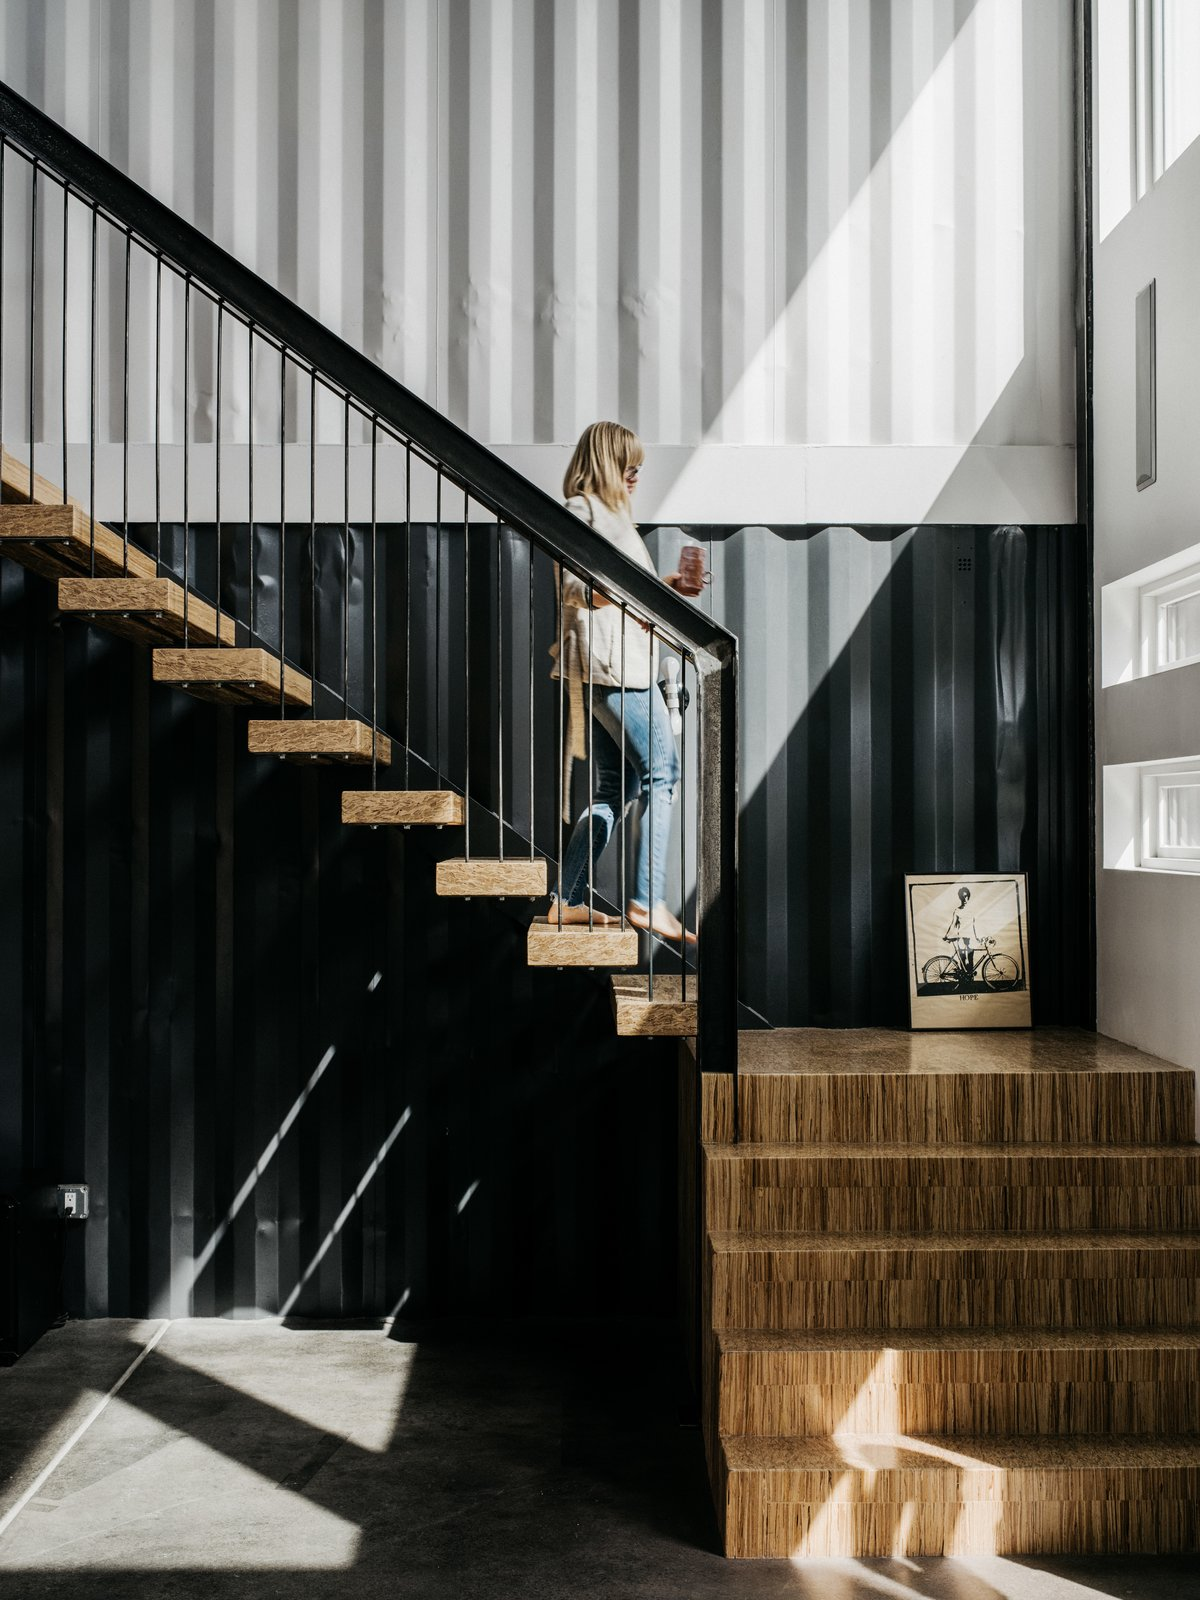 Staircase, Metal Railing, and Wood Tread In 2014, while recovering from a work-related injury, Denver-area firefighter Regan Foster started exploring the idea of shipping containers for a new house he was planning to build. Two years later, he and his wife, Libby, moved into a home made mostly of the giant metal bins, having done much of the work themselves. They share the residence with their year-old daughter, Evie, and Libby's mother.  Photo 1 of 13 in A Colorado Firefighter Built His Own Shipping Container Home, and Found a New Calling Along the Way